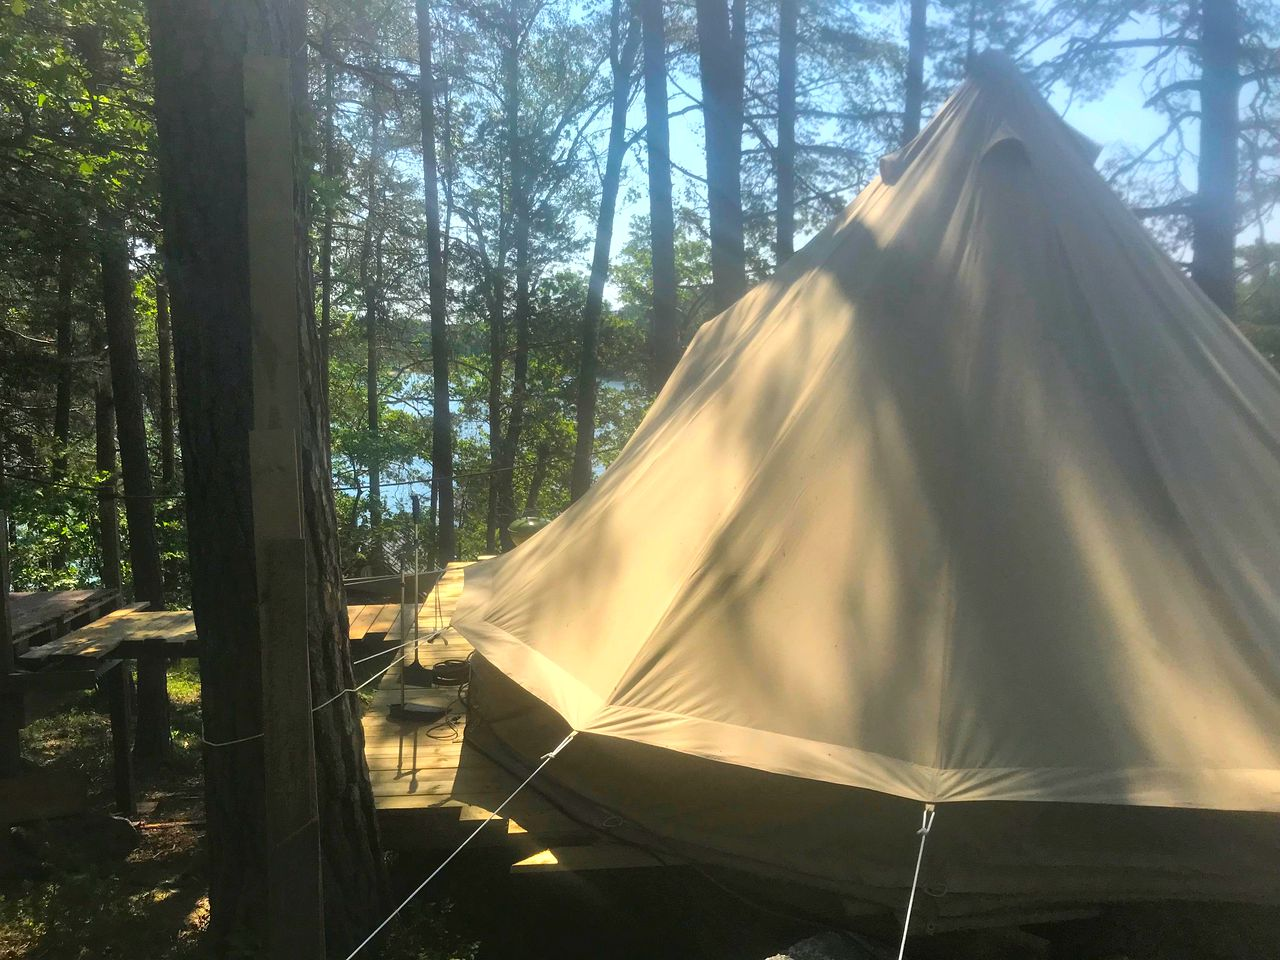 Bell tents for a romantic getaway in Stockholm, Sweden